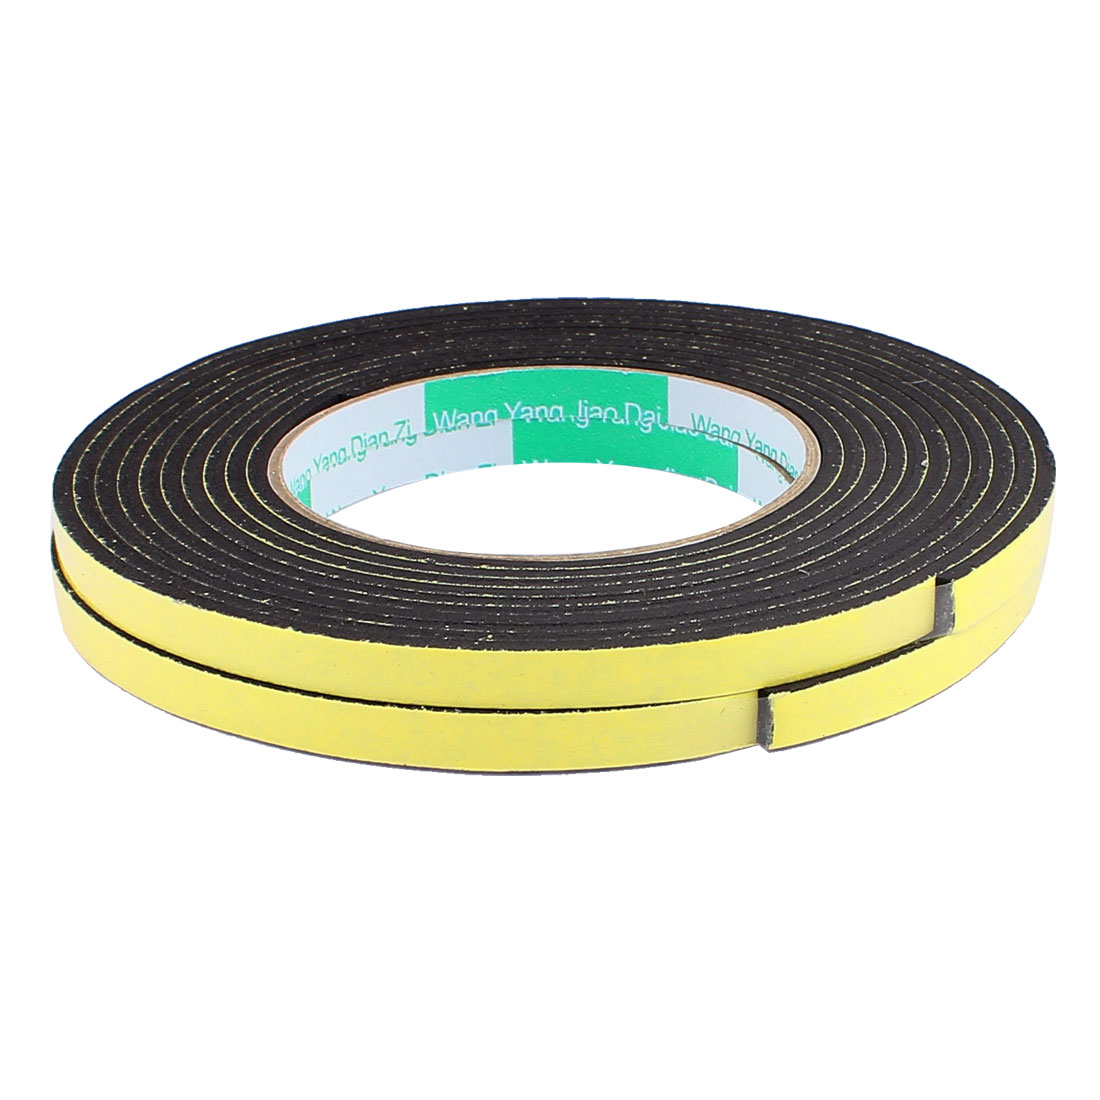 2 Pcs 0.8CM Width 4M Length 3MM Thick Single Sided Sealing Shockproof Sponge Tape